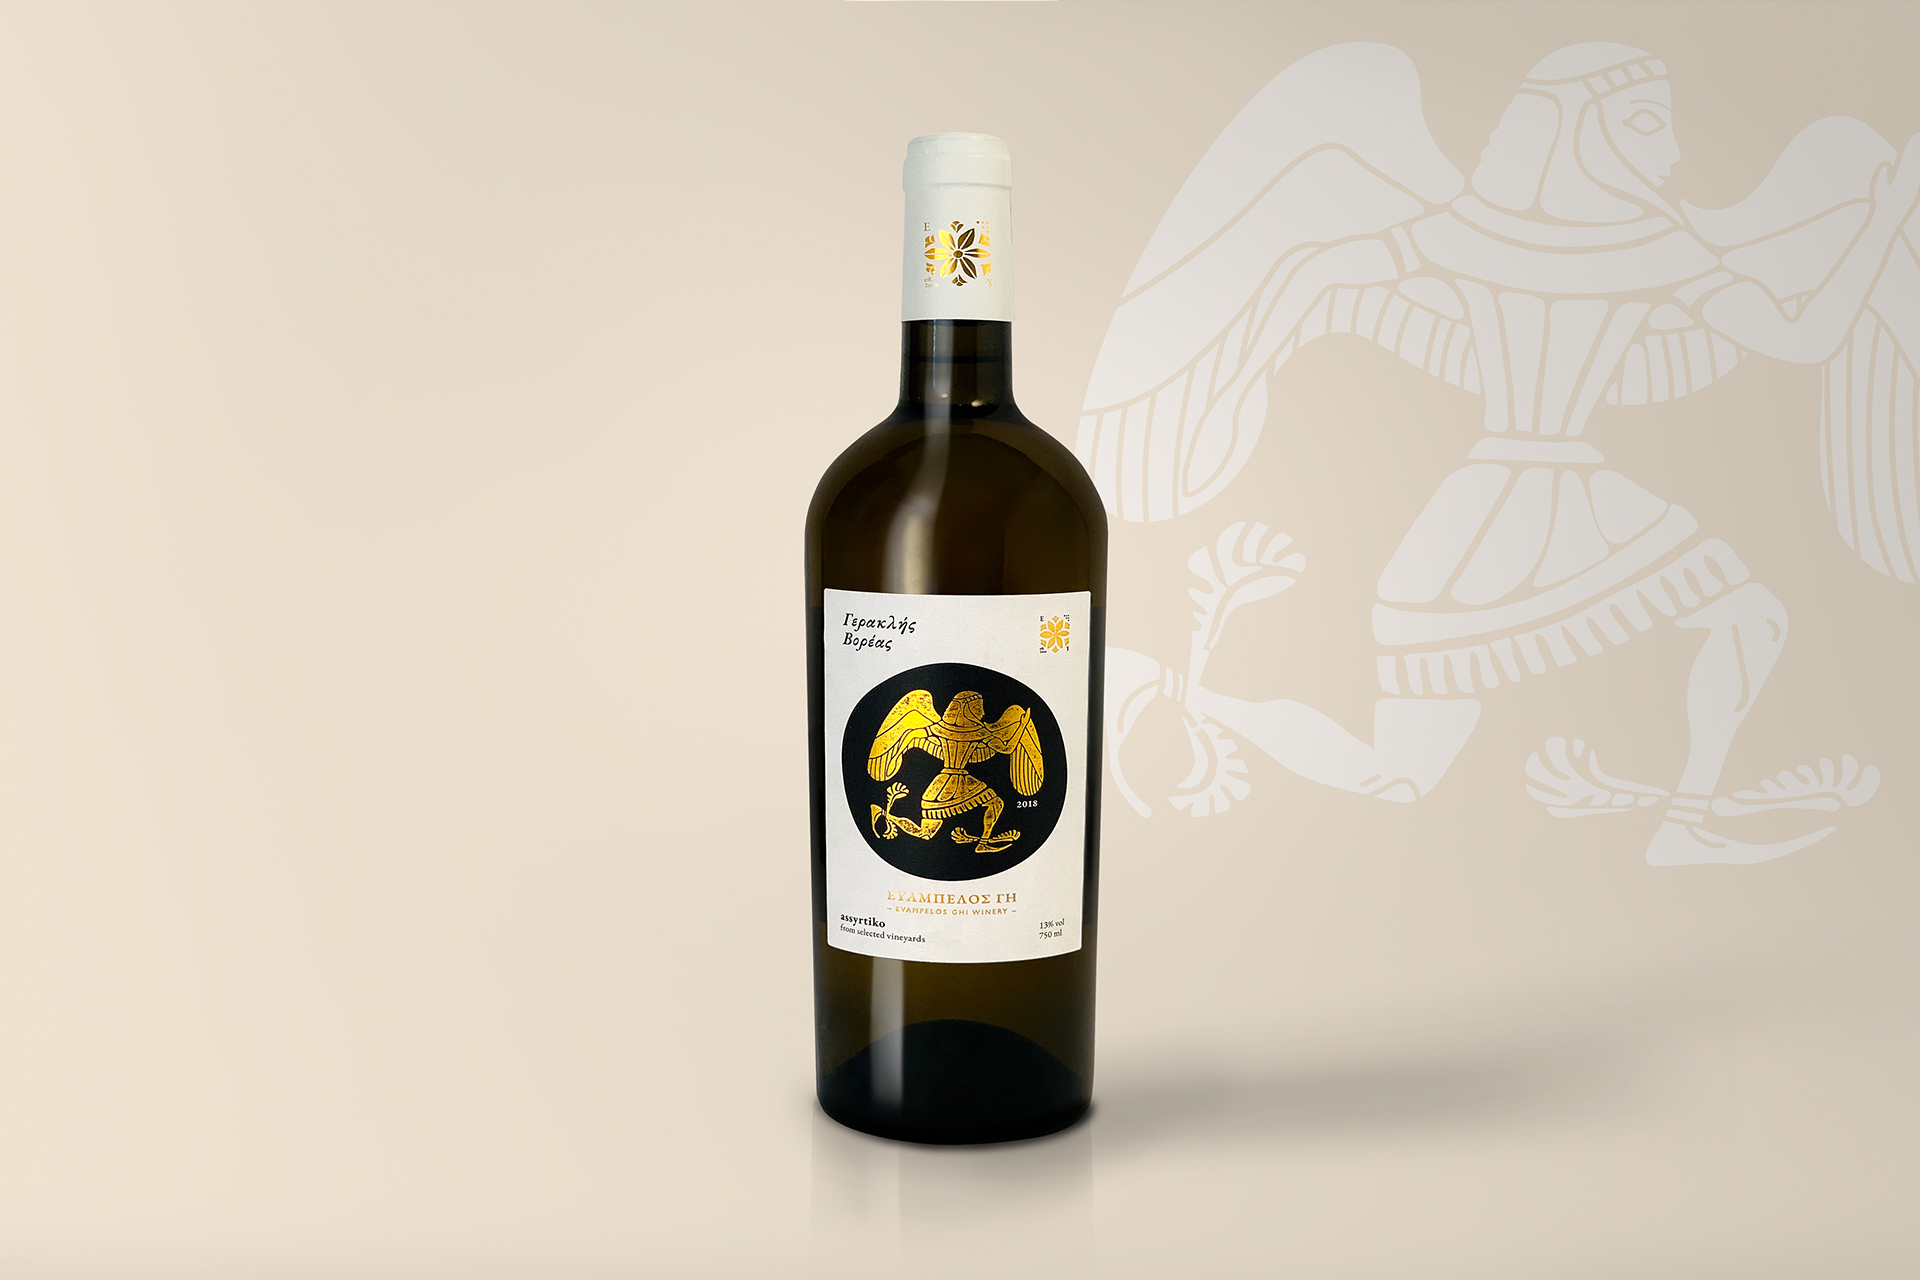 Geraklis Voreas Premium White Wine Label Design by Deworks